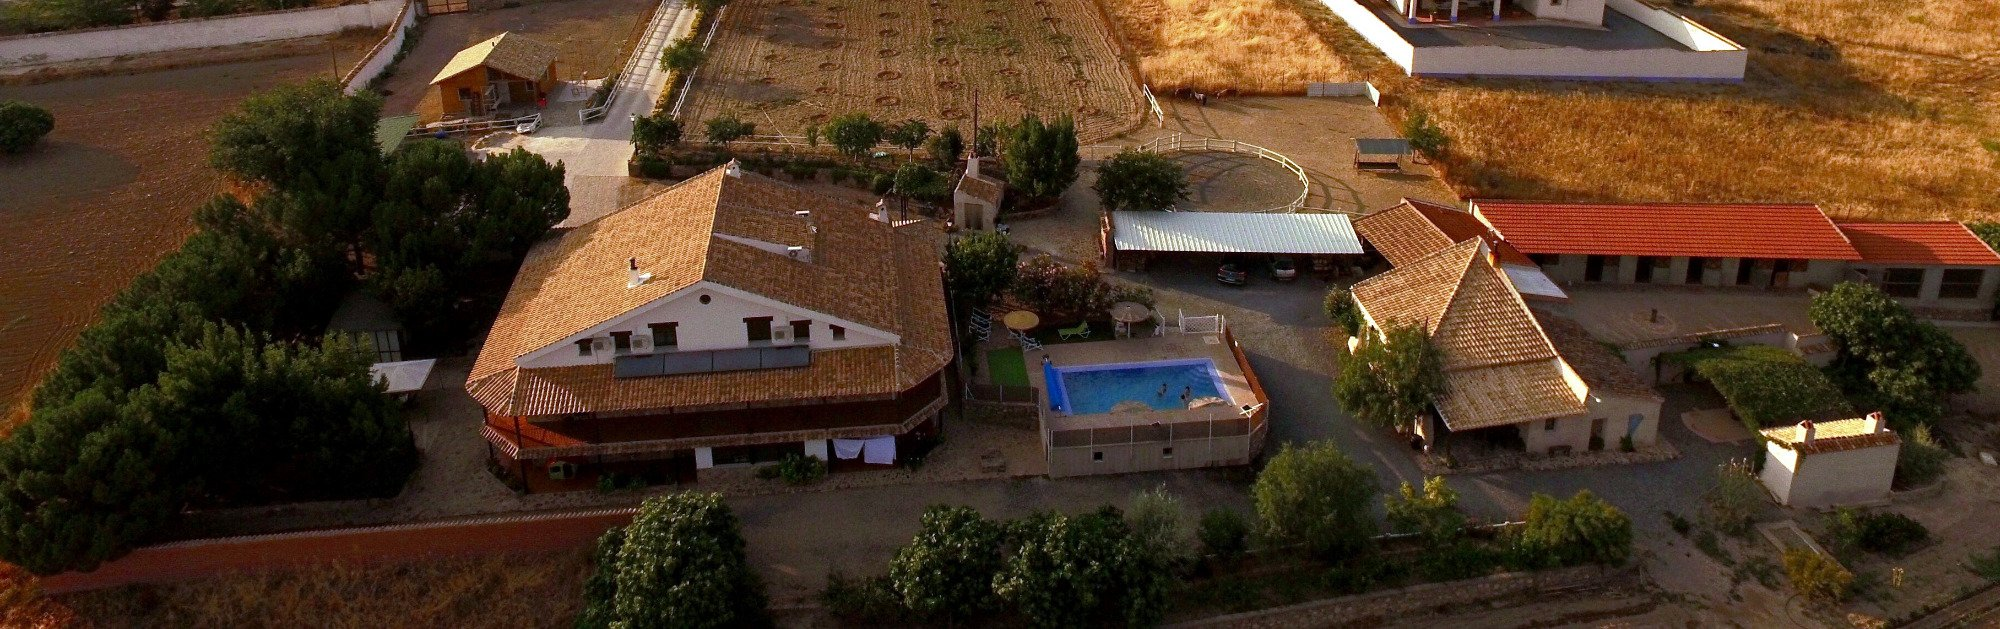 Casa Rural Los Laureles